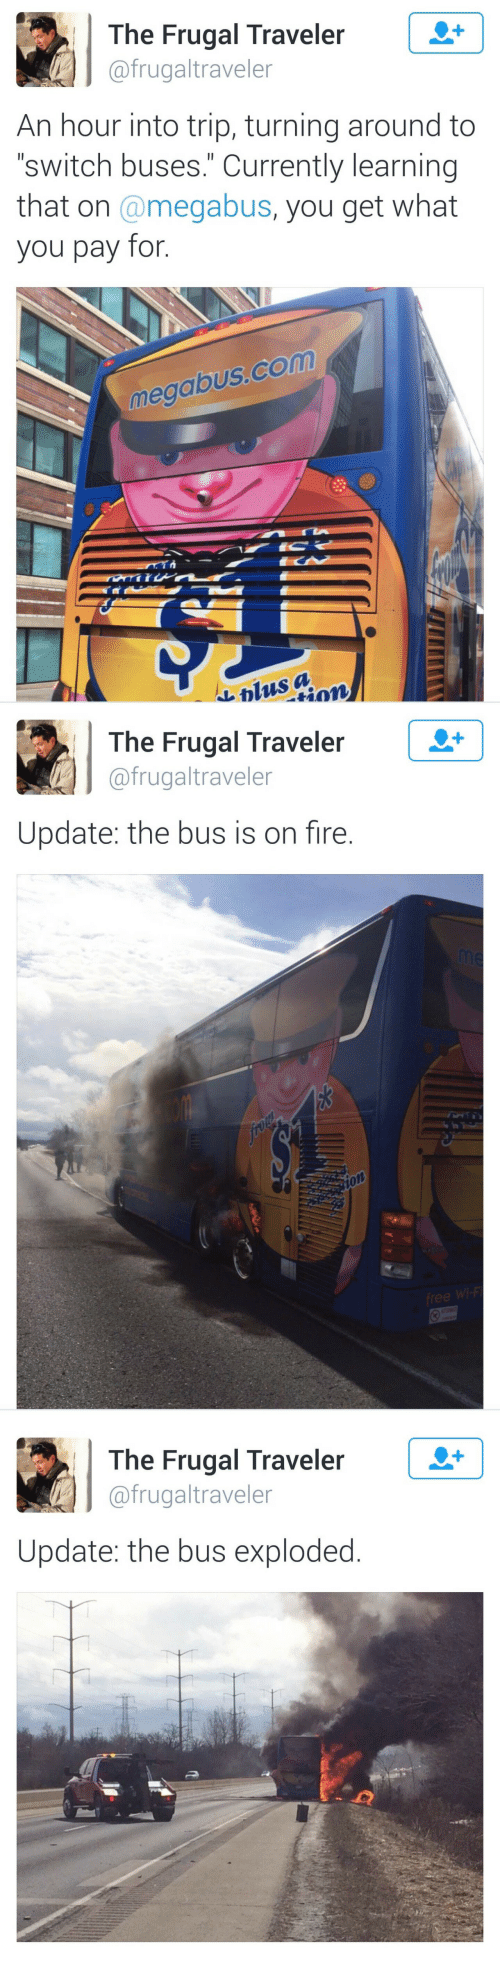 "Fire, Com, and Switch: The Frugal Traveler  @frugaltraveler  An hour into trip, turning around to  ""switch buses."" Currently learning  that on @megabus, you get what  you pay for.  megabus.com  &blus a   The Frugal Traveler  @frugaltraveler  メ  Update: the bus is on fire.  训佾  1o   The Frugal Traveleir  @frugaltraveler  Update: the bus exploded"